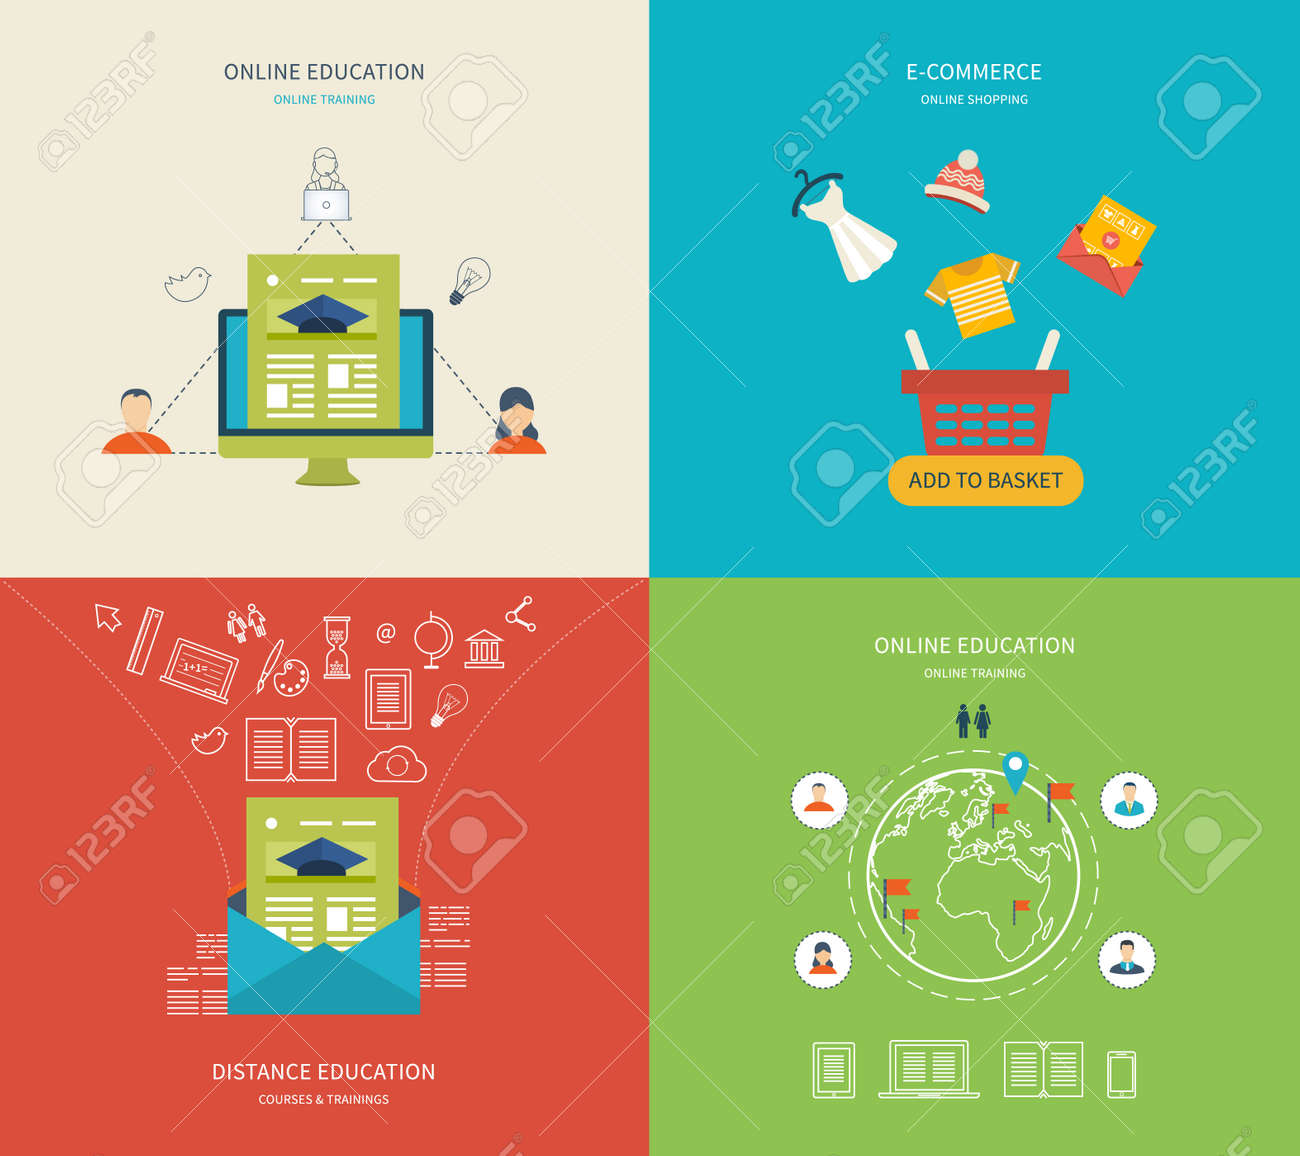 E learning poster designs - Flat Design Modern Vector Illustration Icons Set Of Online Education E Learning And Online